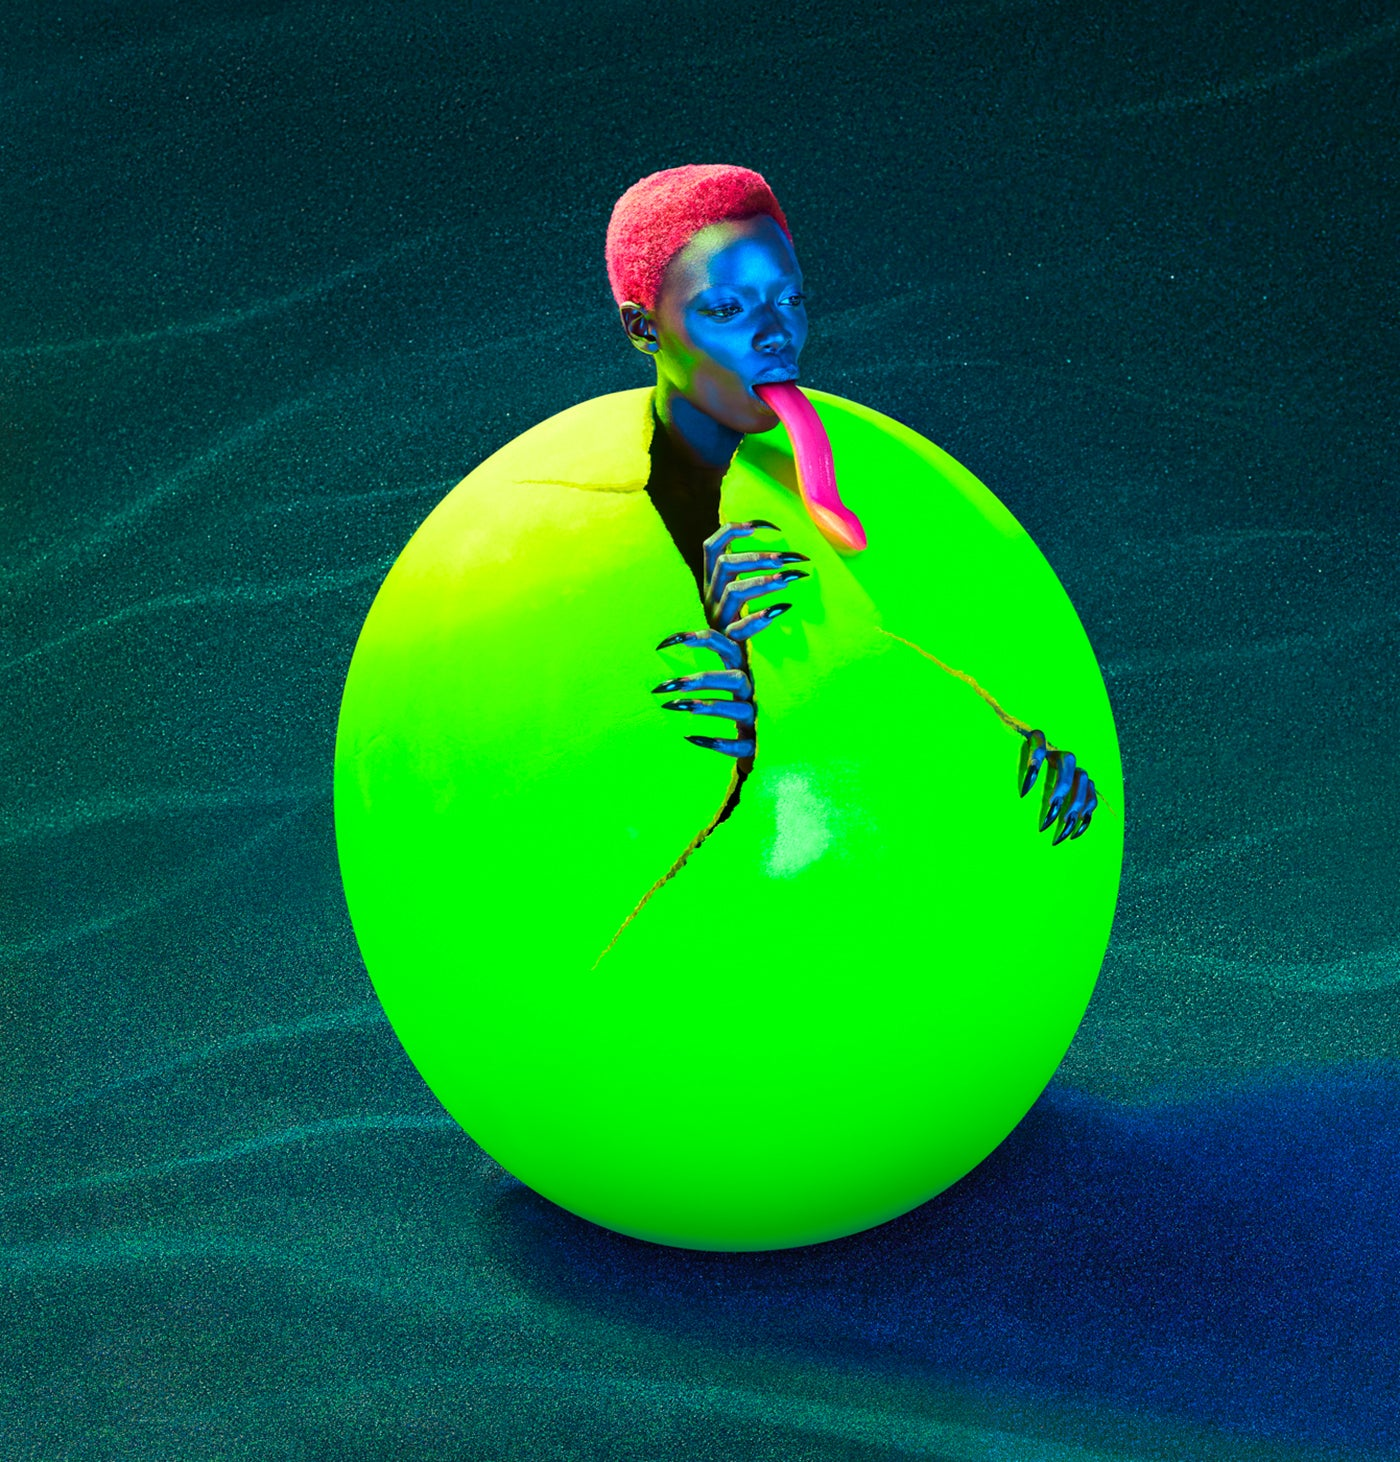 Model in a neon egg. From Venus beach from Pol Kurucz